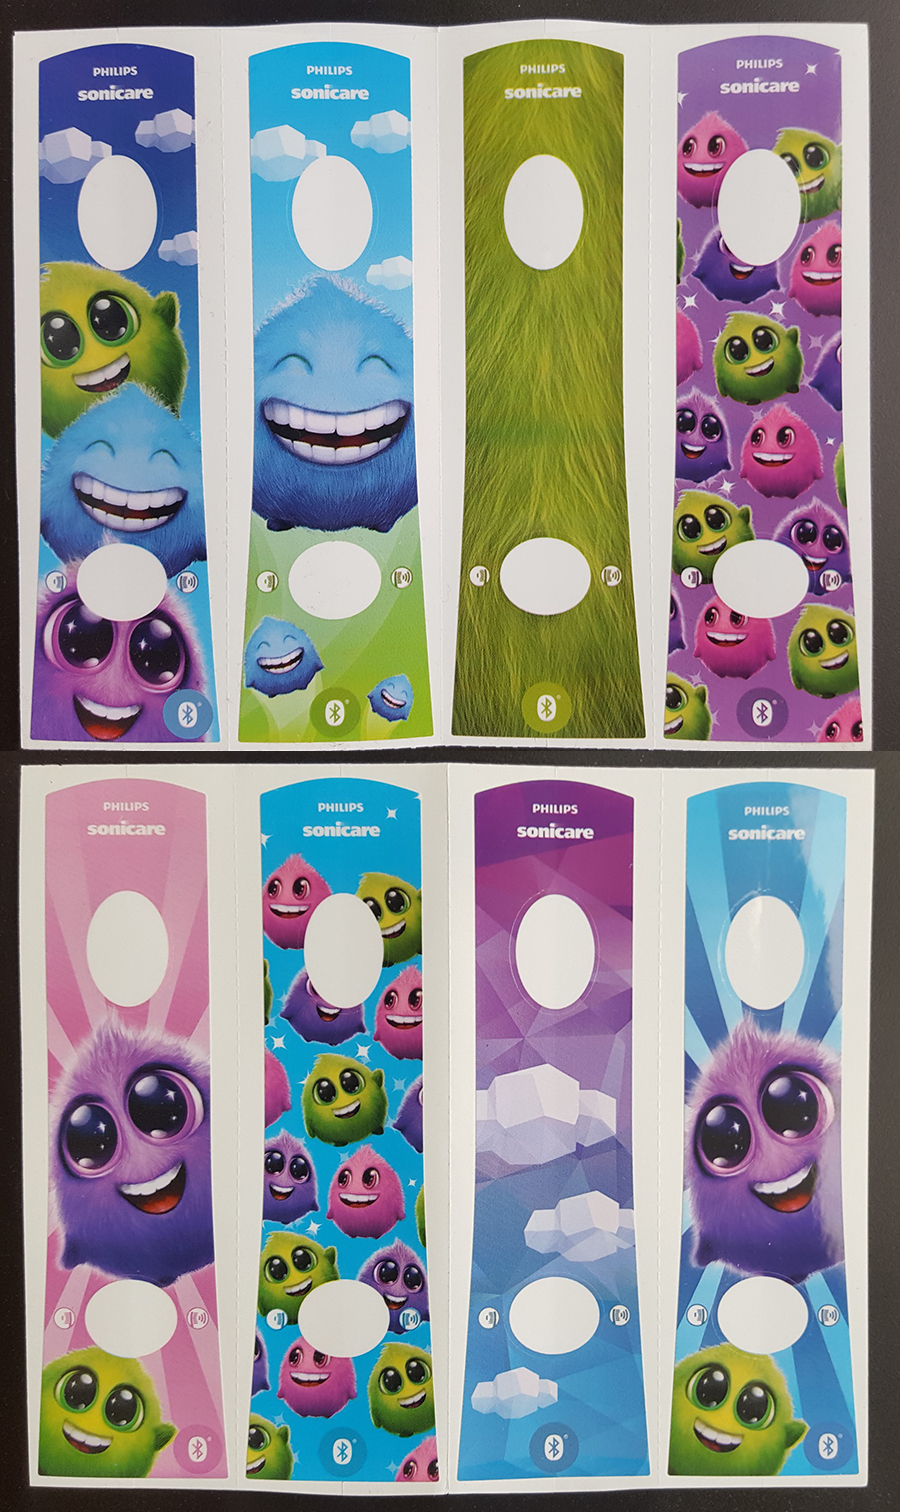 philips sonicare for kids stickers